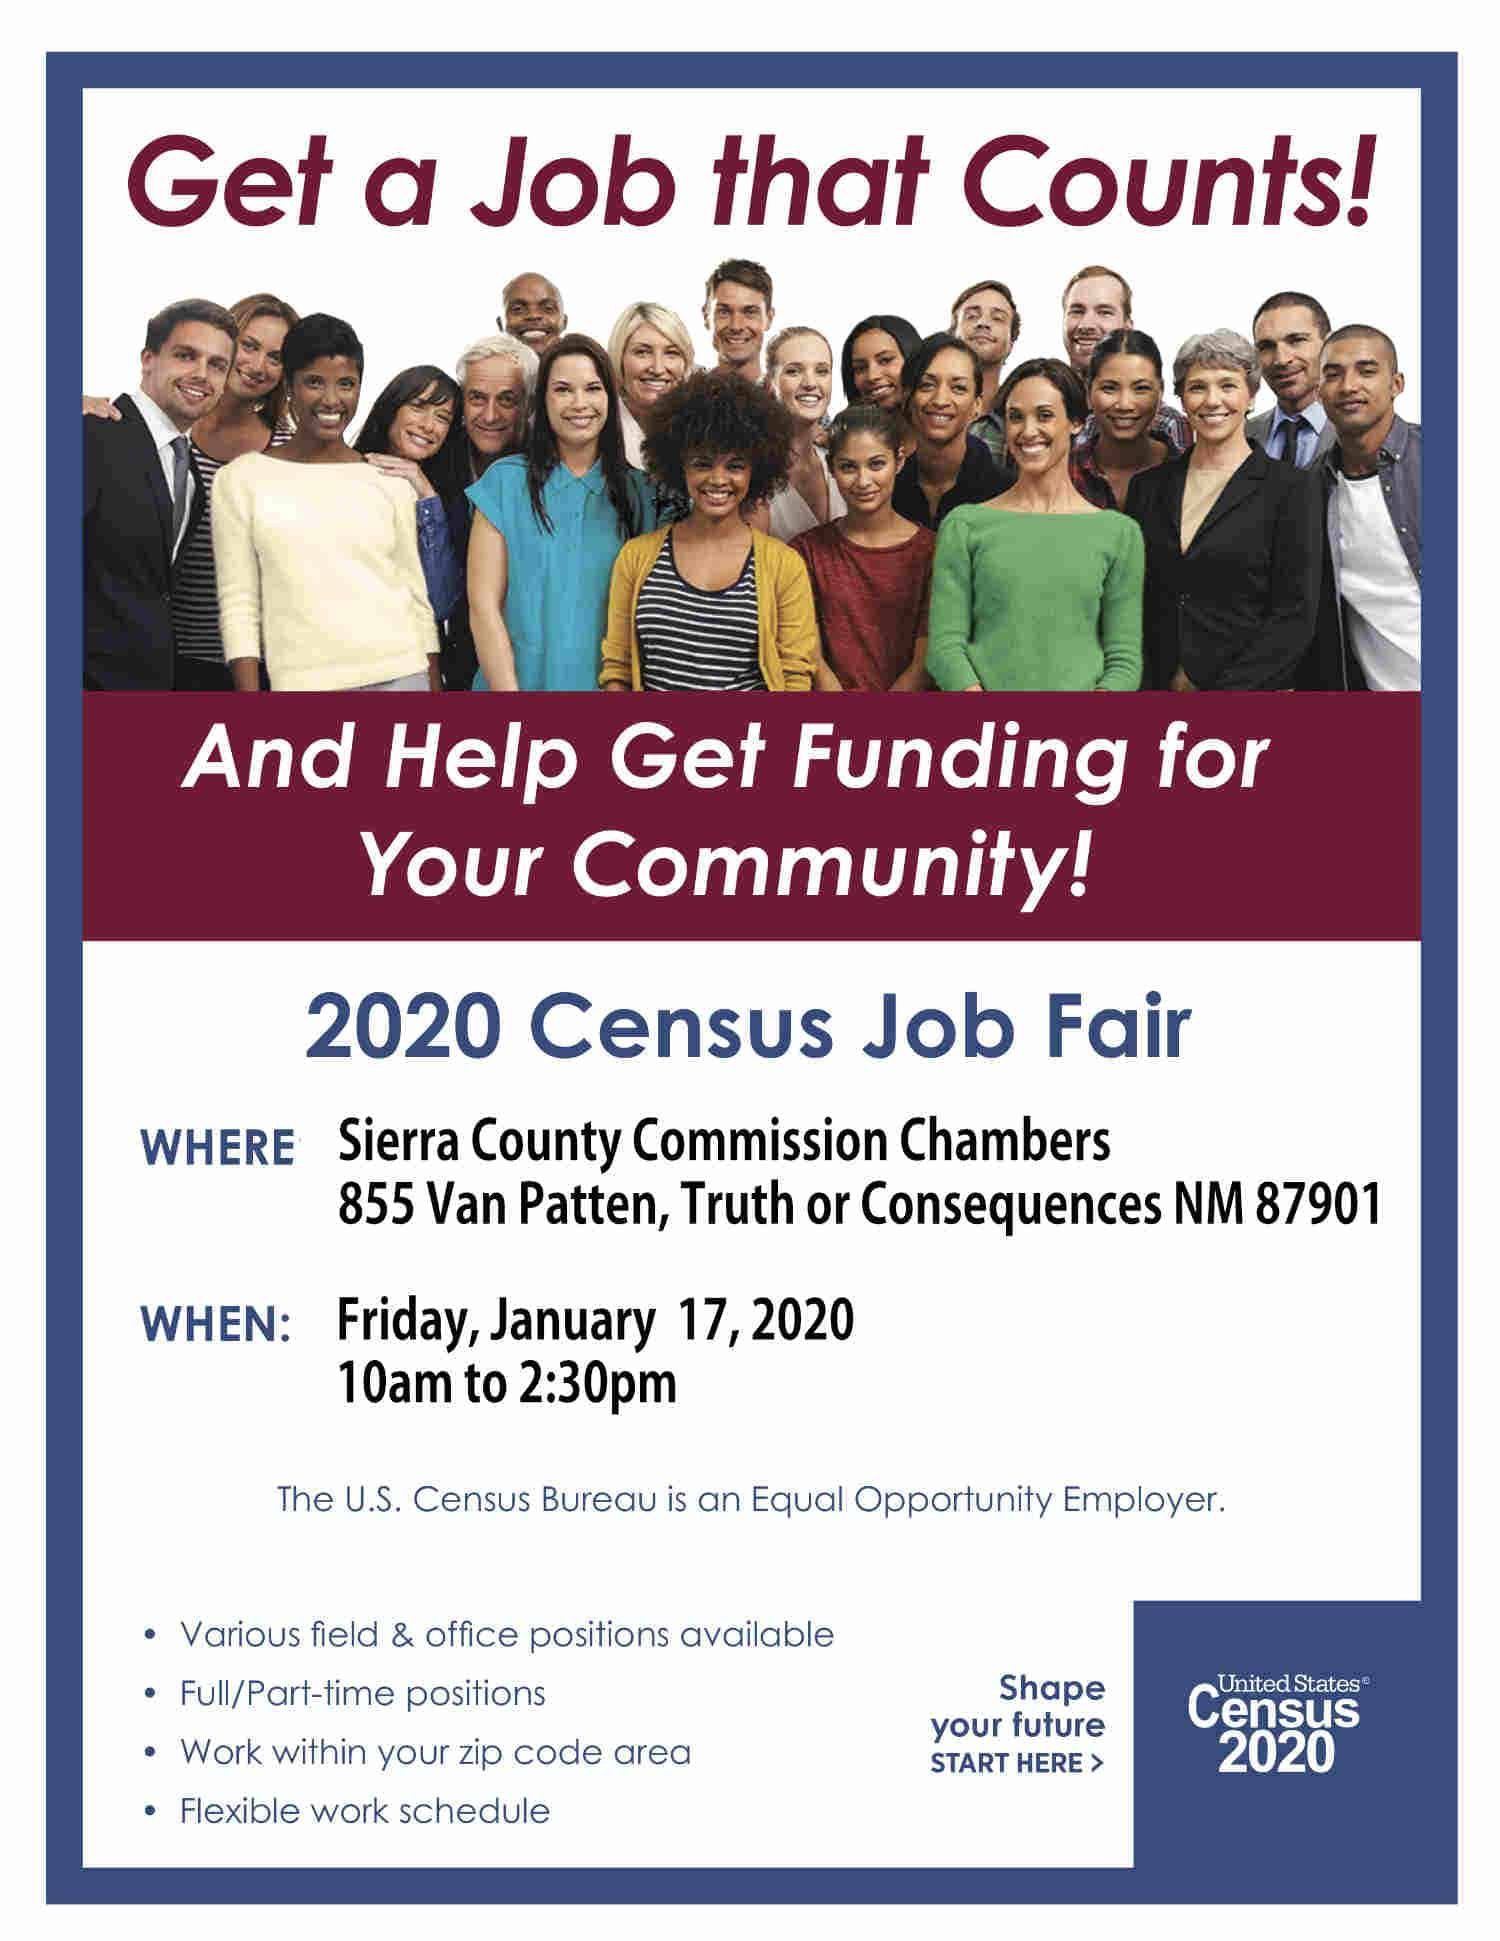 2020 Census JOB FAIR in Sierra County NM